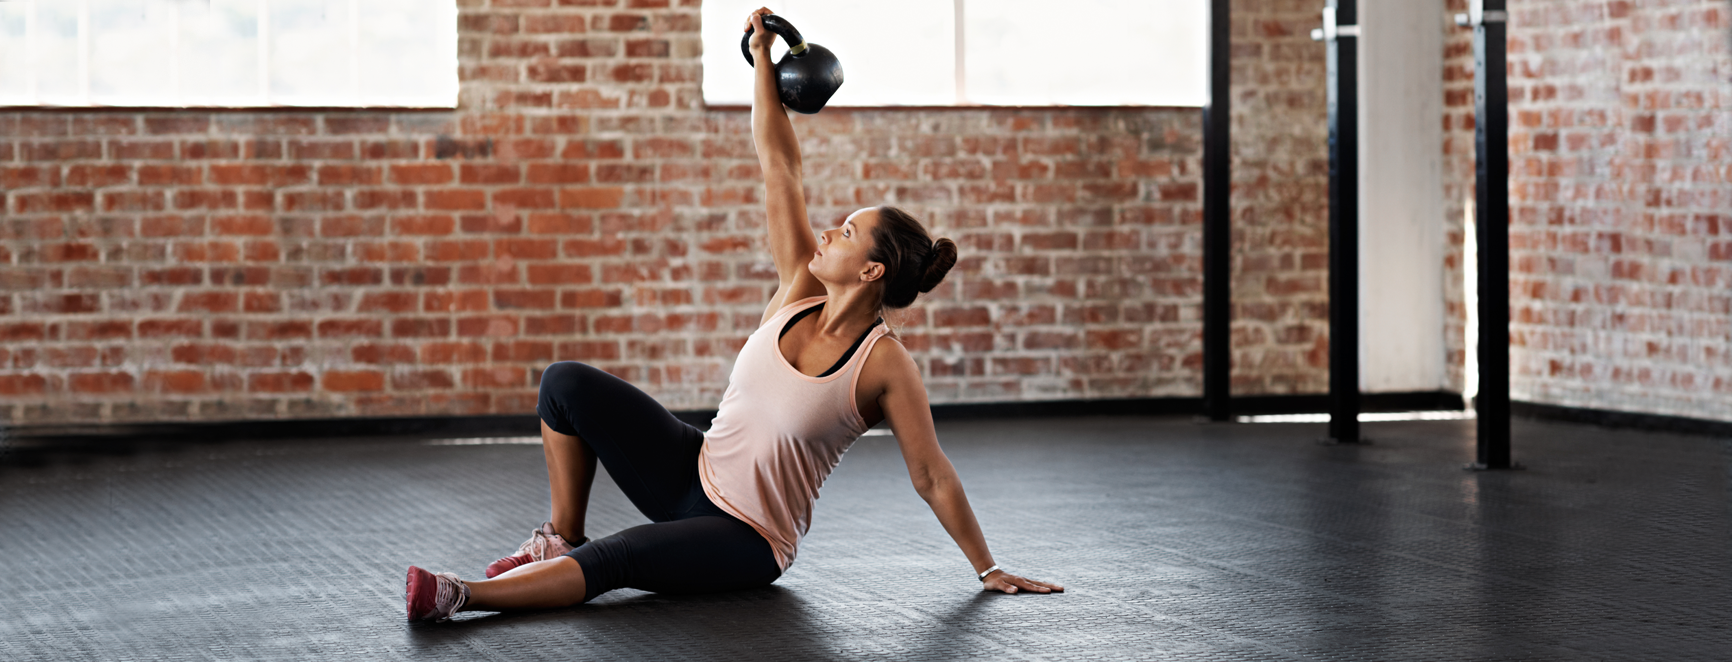 Best Kettlebell Workout Class for Weight Loss